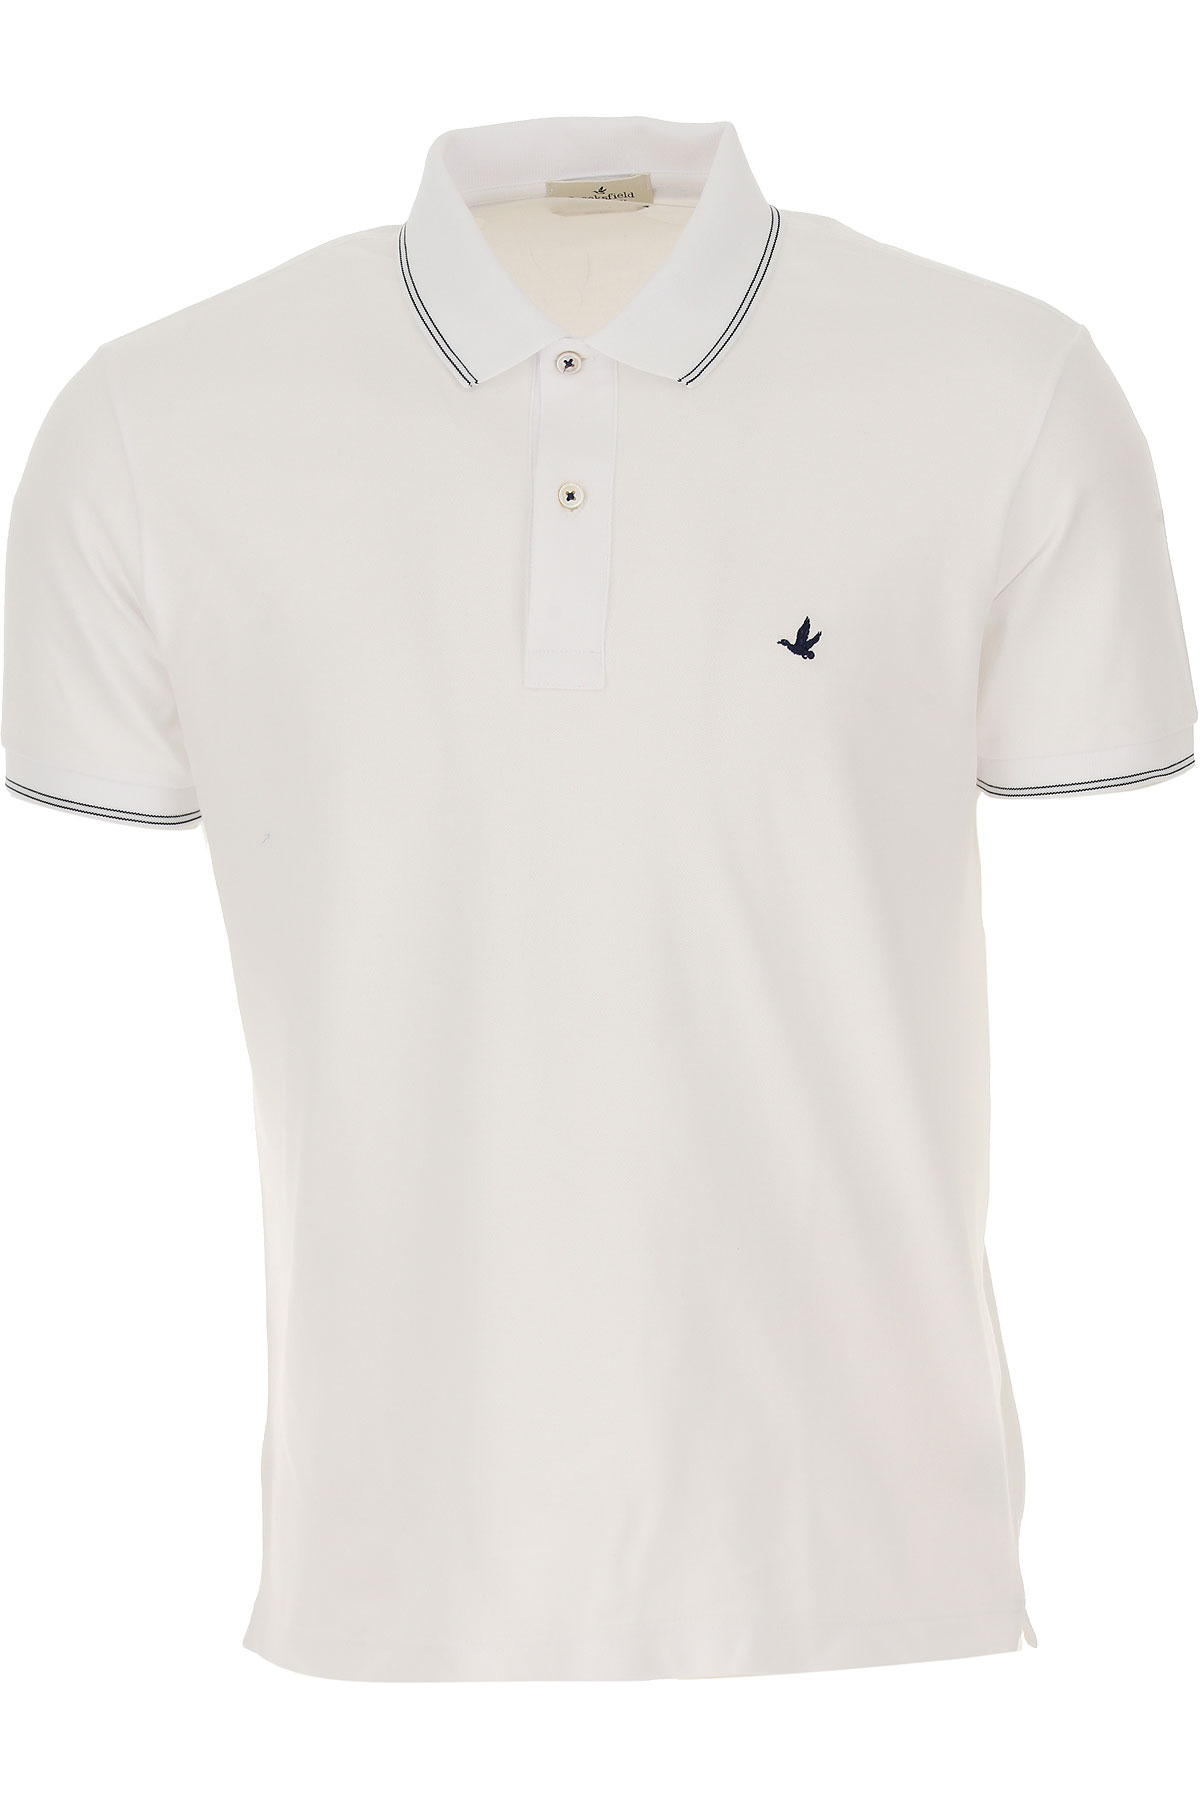 Brooksfield Polo Shirt for Men On Sale, White, Cotton, 2019, L M XXL XXXL